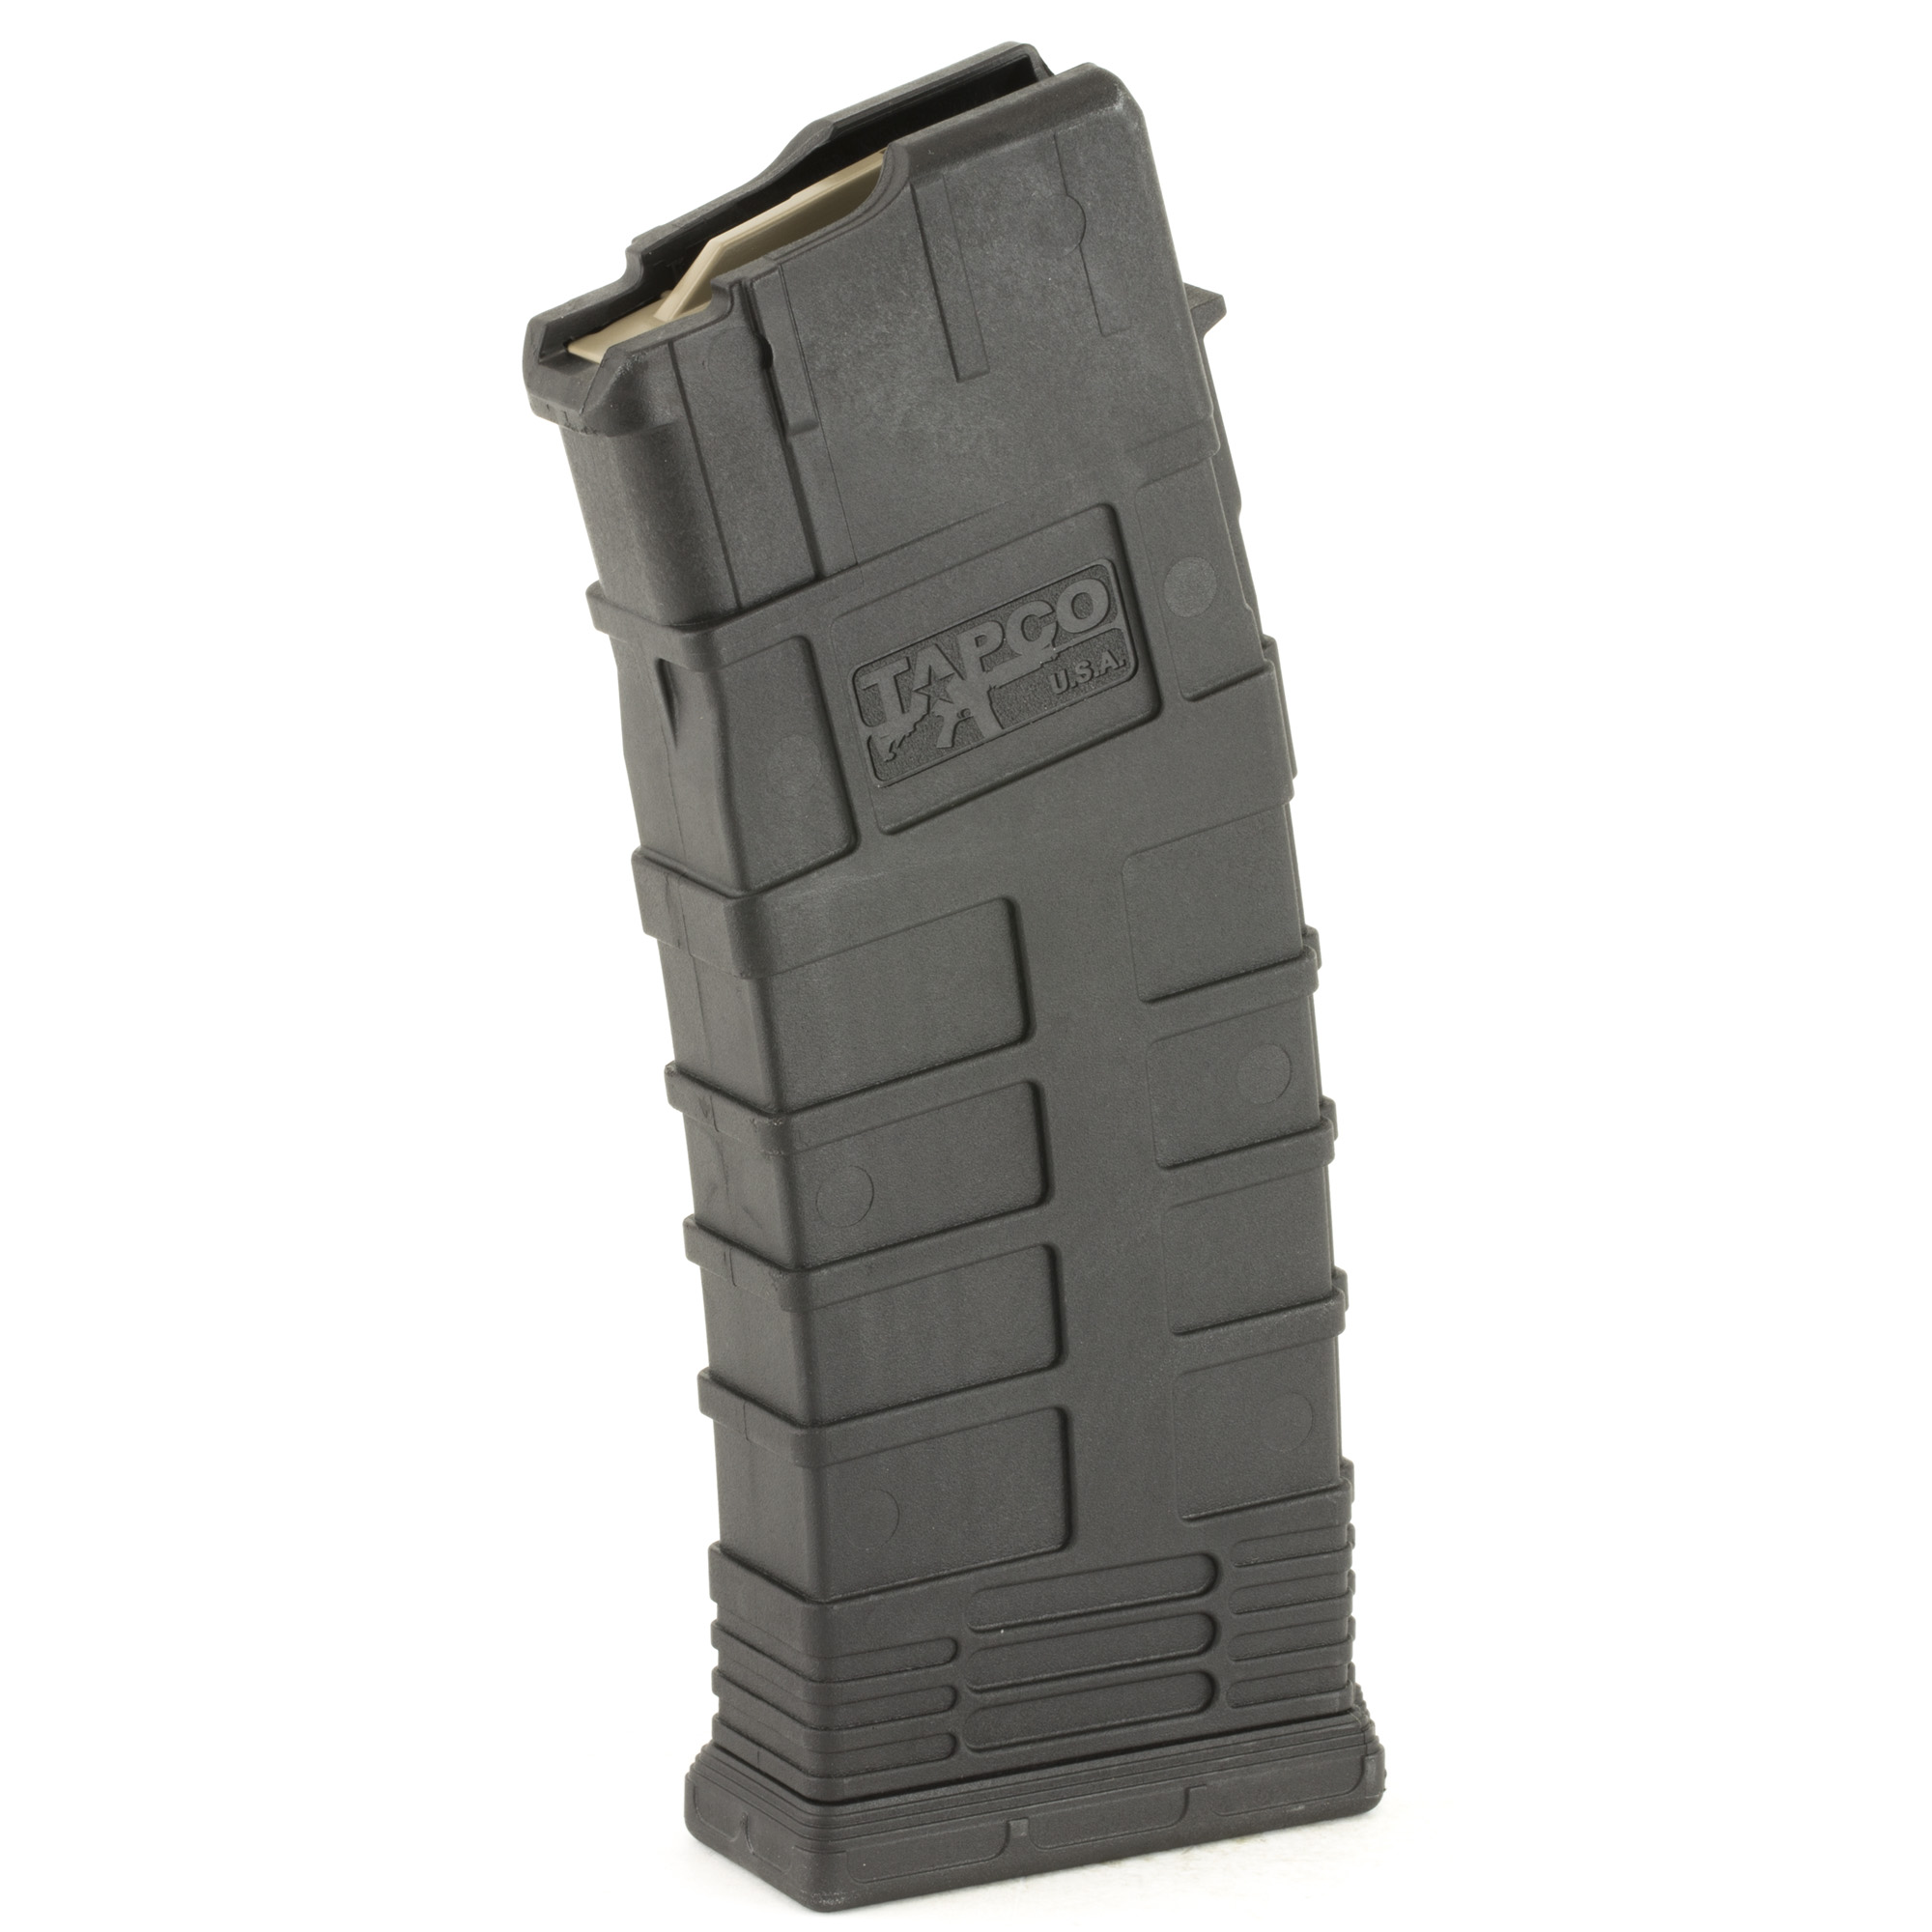 "This magazine is made of reinforced composite"" a heavy duty stainless steel spring"" and an anti-tilt follower. The inclusion of these high quality parts will ensure that once you've bought the Tapco Galil mag"" you won't have to go searching for another for years to come. Plus"" it counts as 3 U.S. 922r compliant parts."